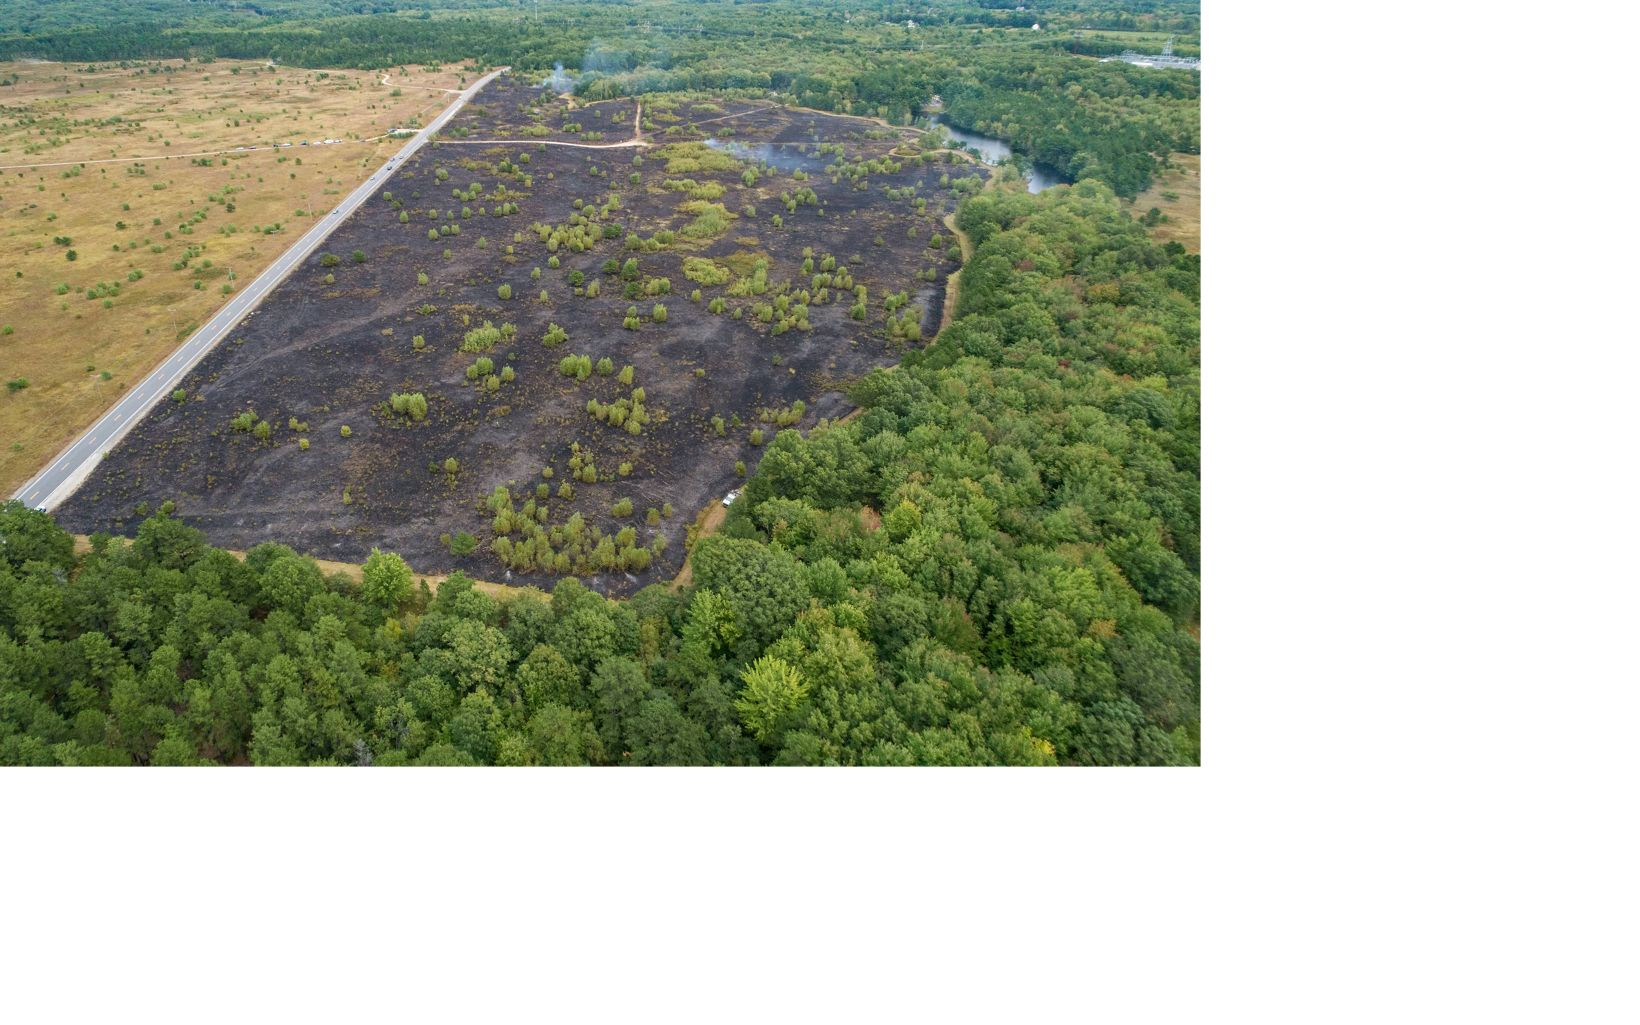 An aerial view after a controlled burn on the grassland at The Nature Conservancy's Kennebunk Plains Preserve.